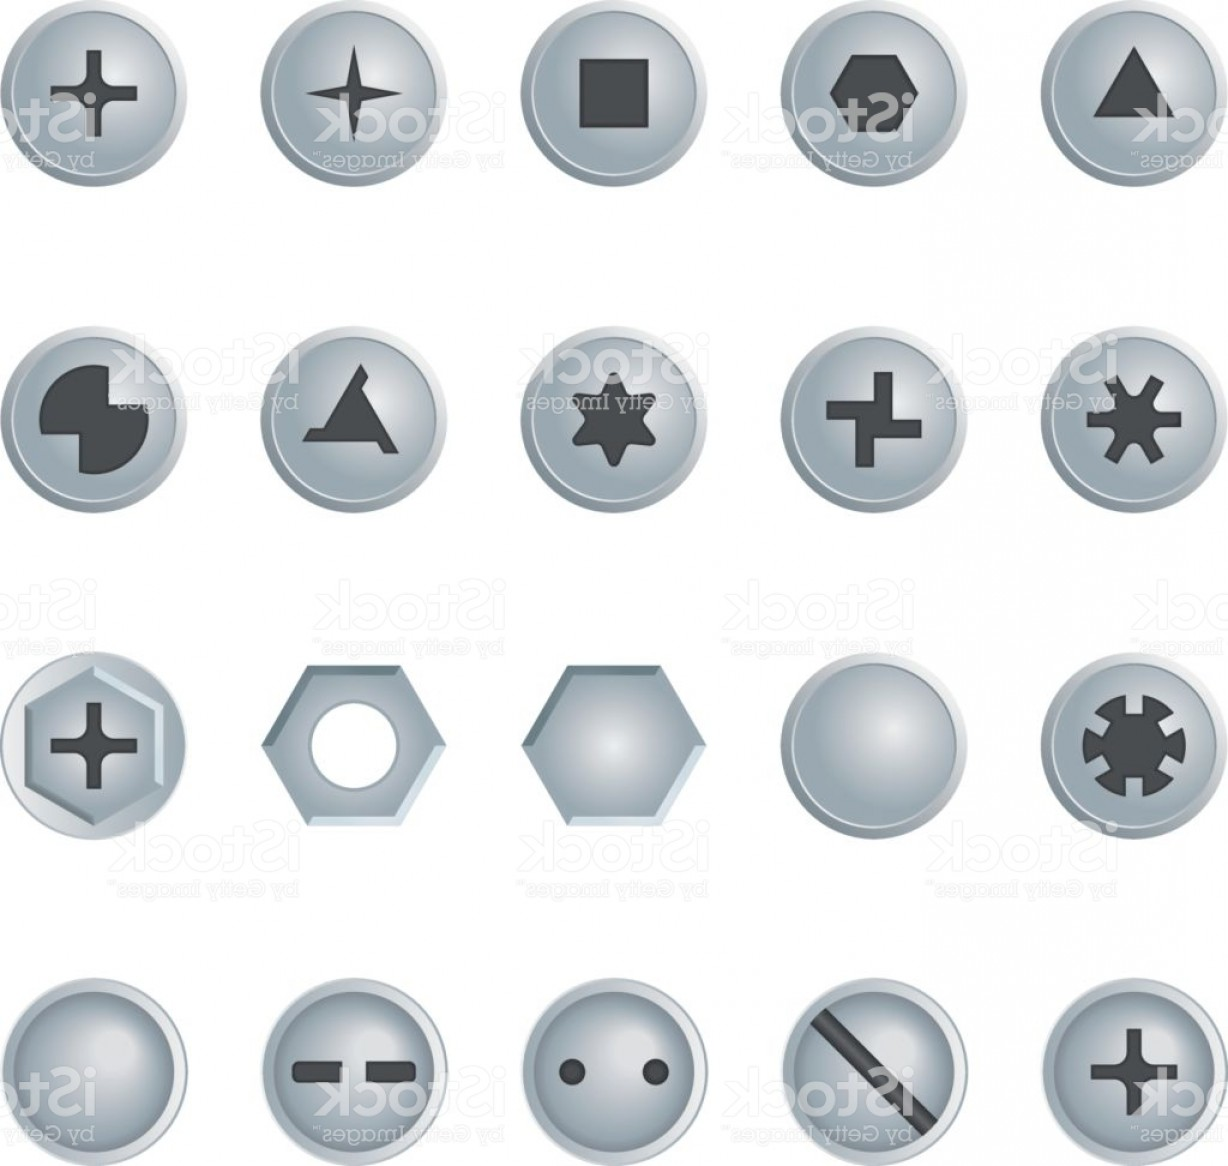 Screw Bolt Head Vector Art: Screw And Bolt Heads Set Isolated Vector Design Elements Gm